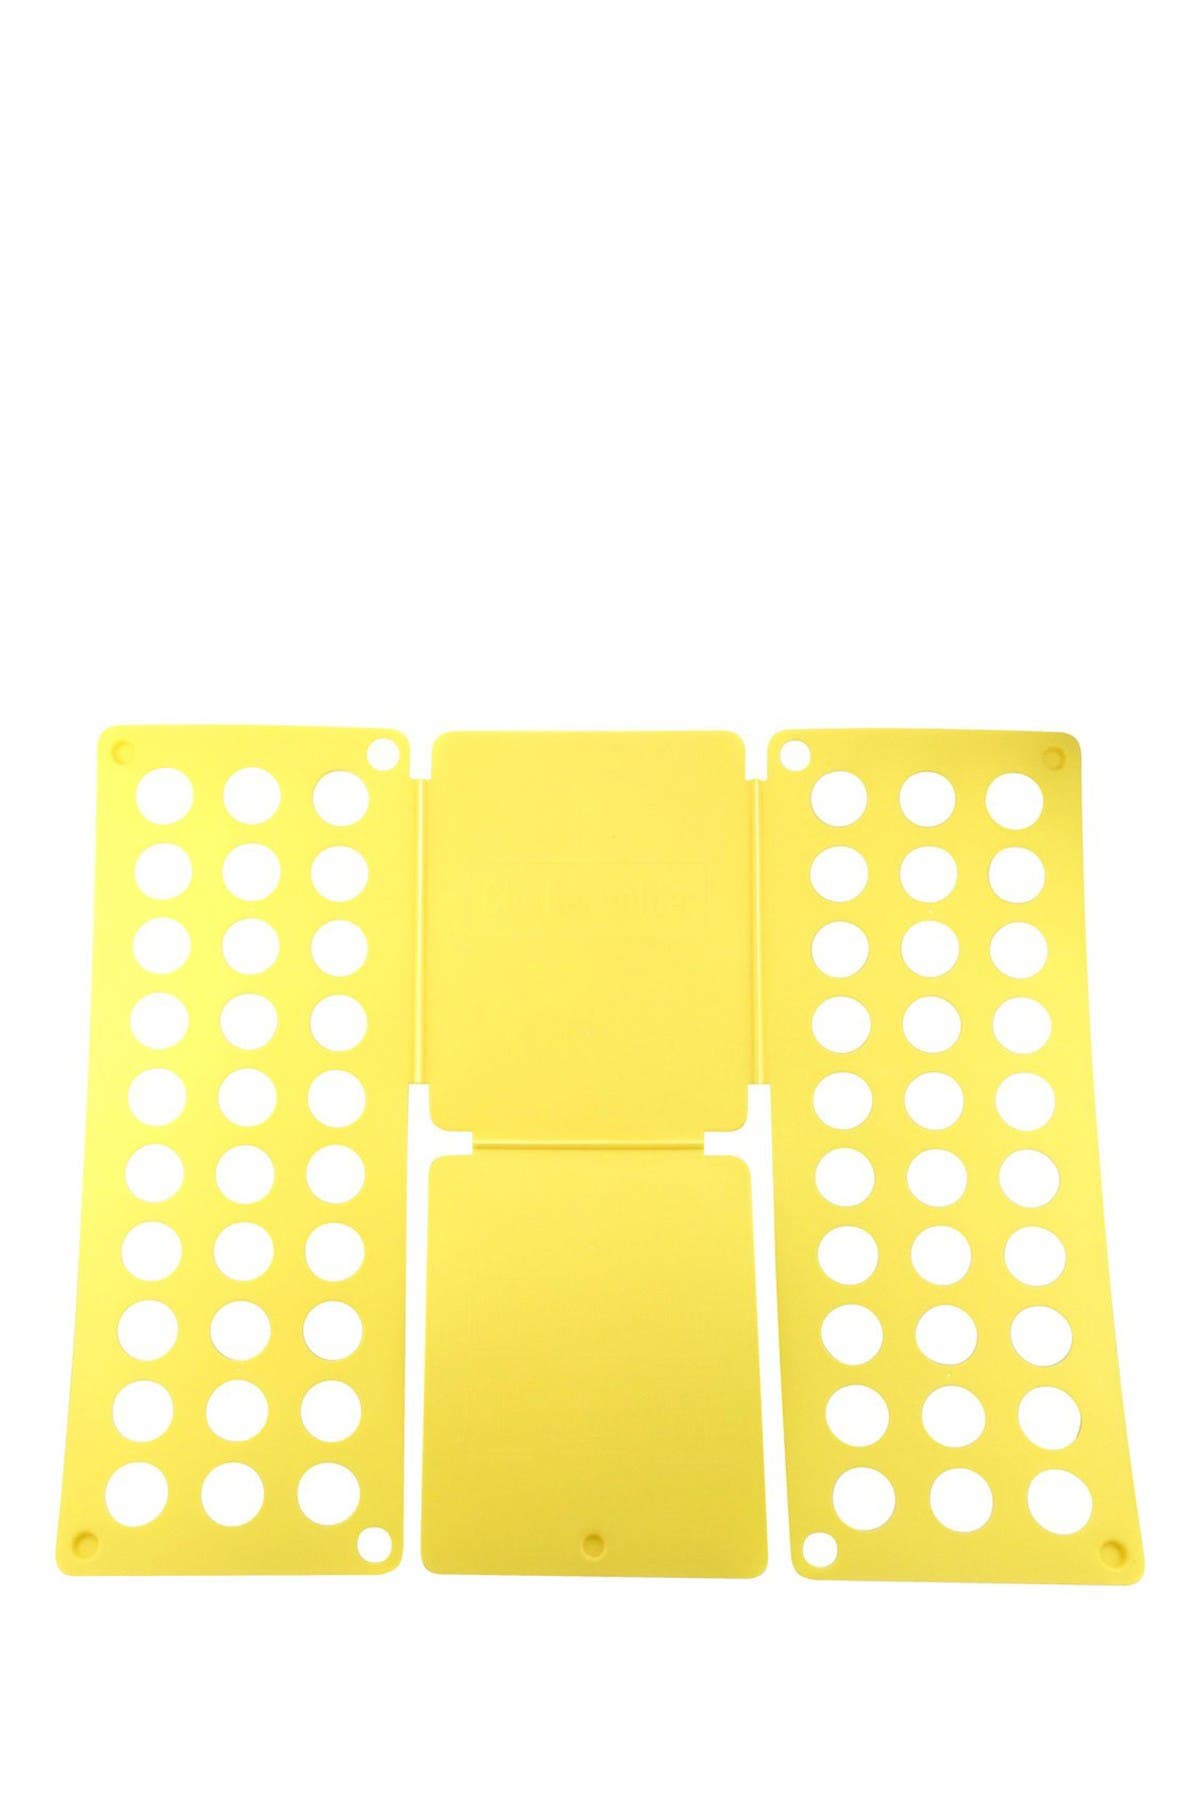 Image of Salav Steamers Clothes Folding Board